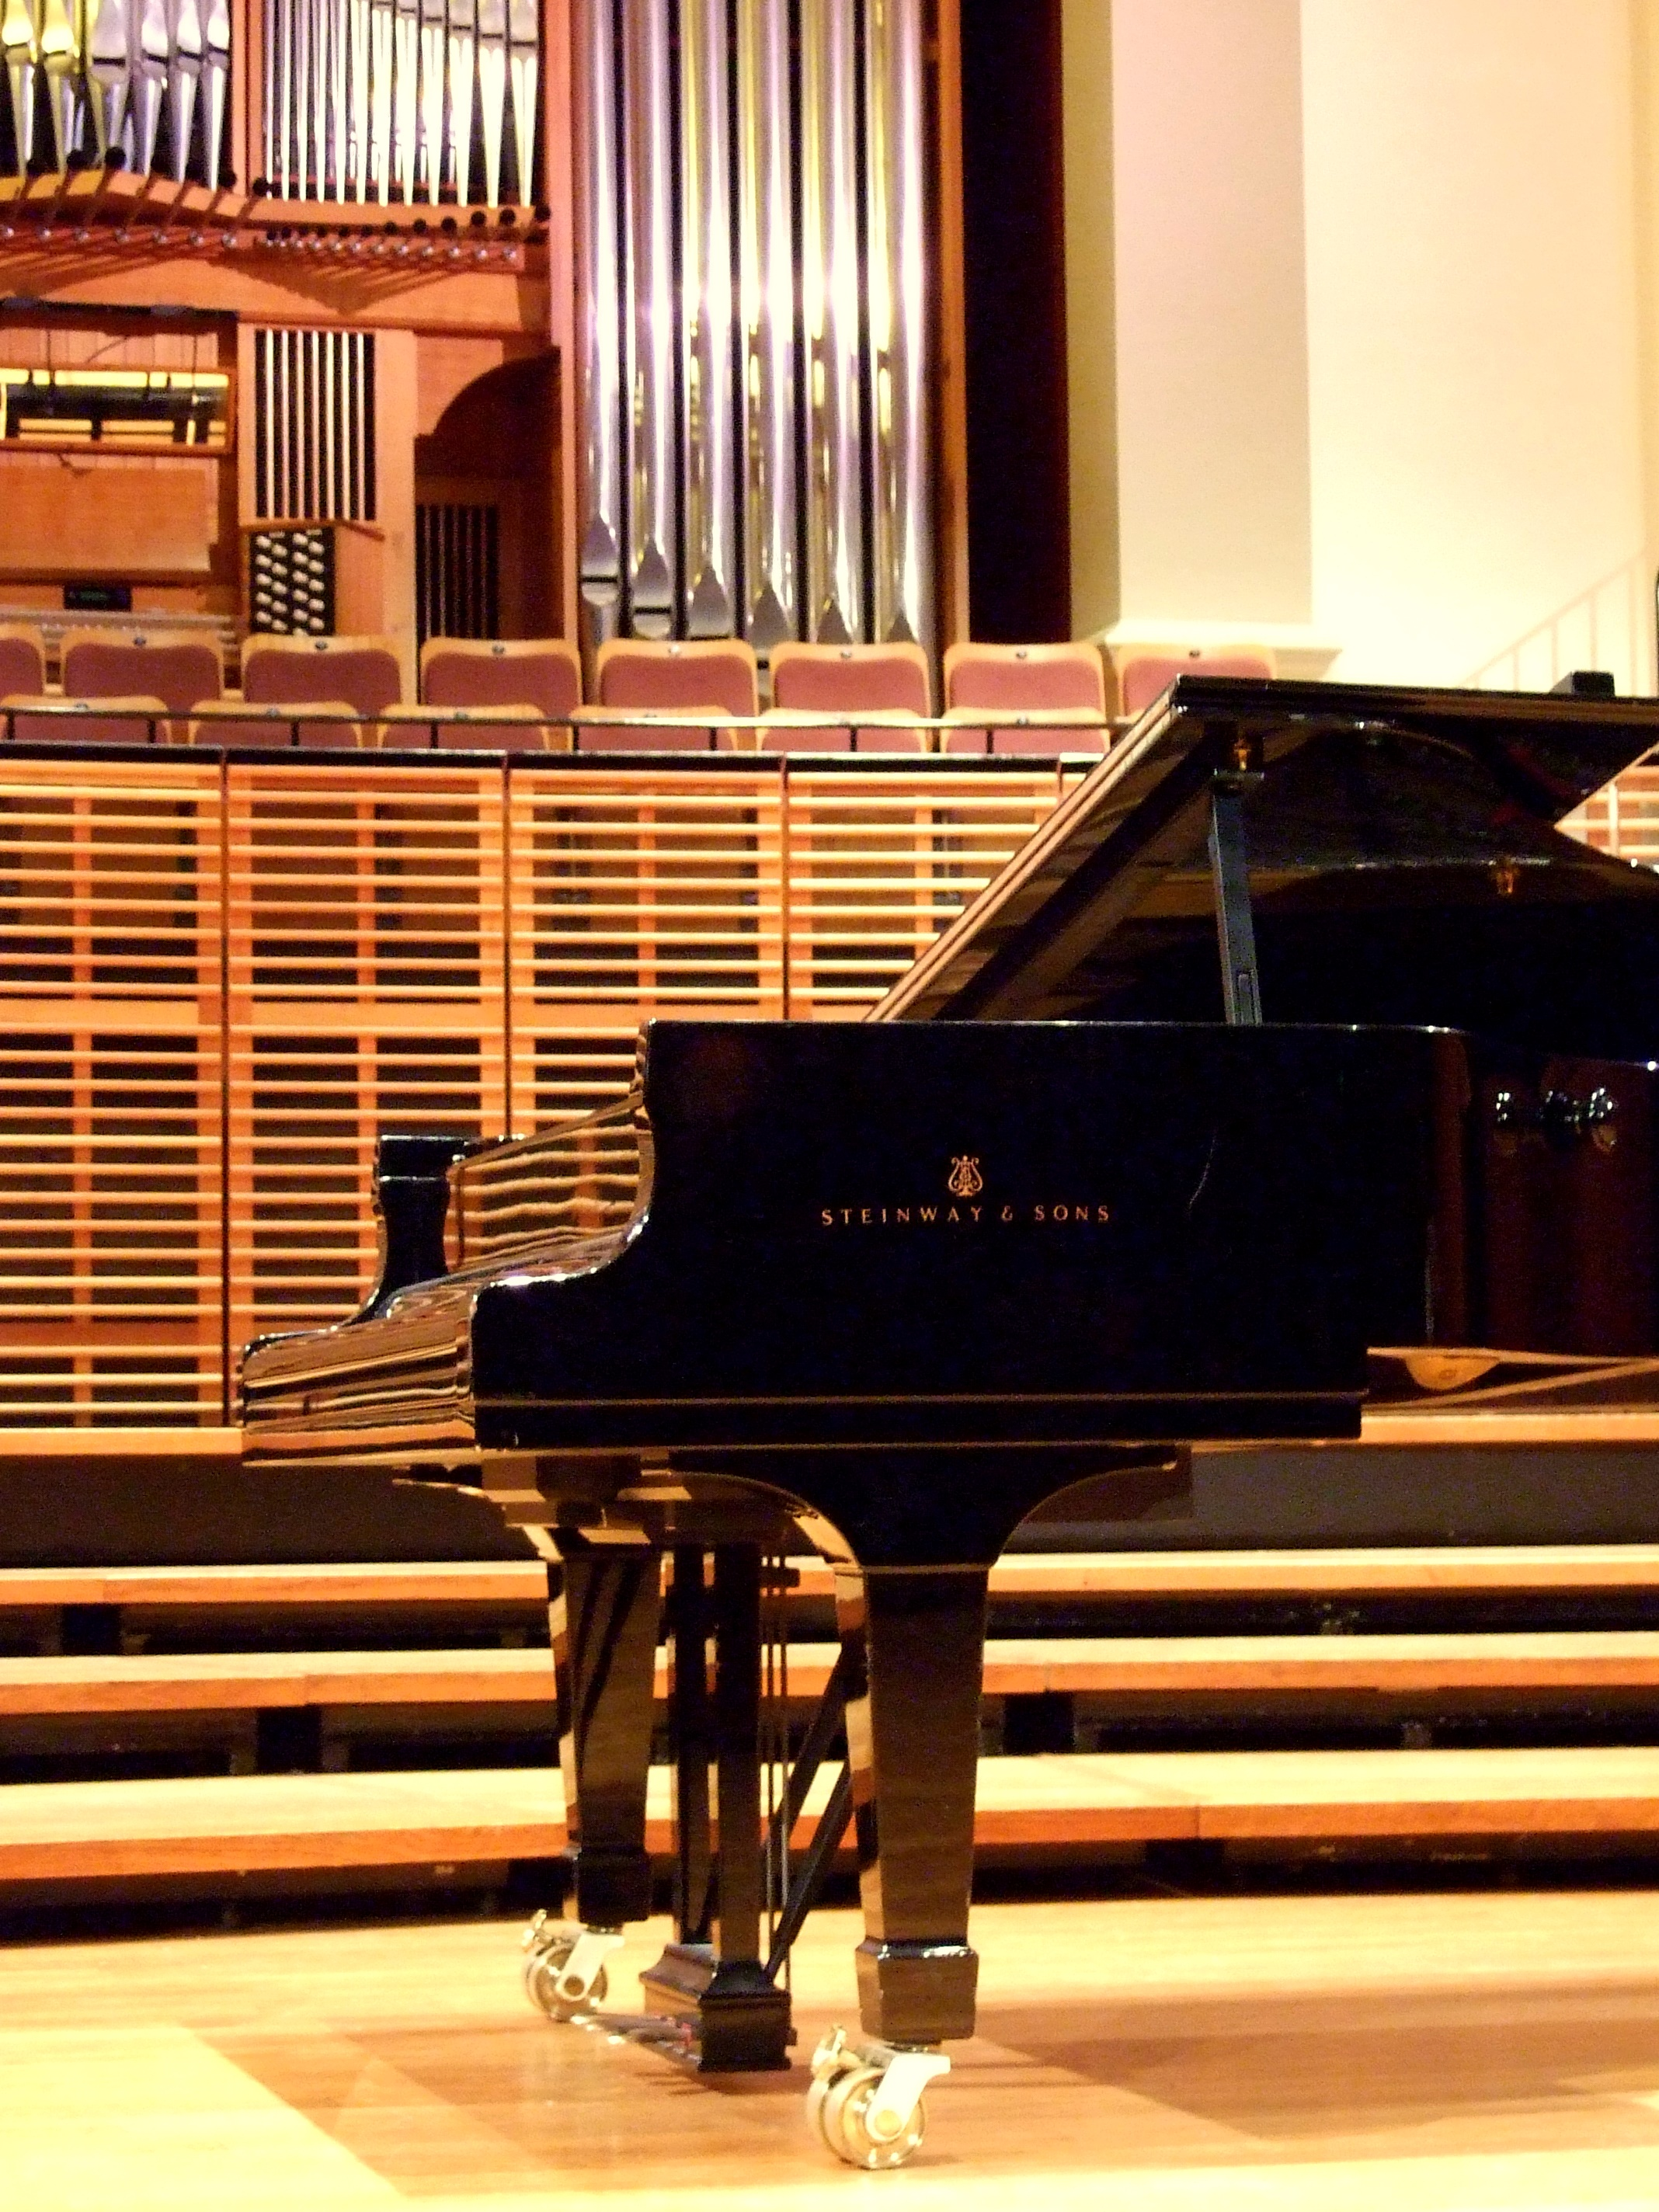 File:Steinway & Sons piano on stage.jpg - Wikimedia Commons